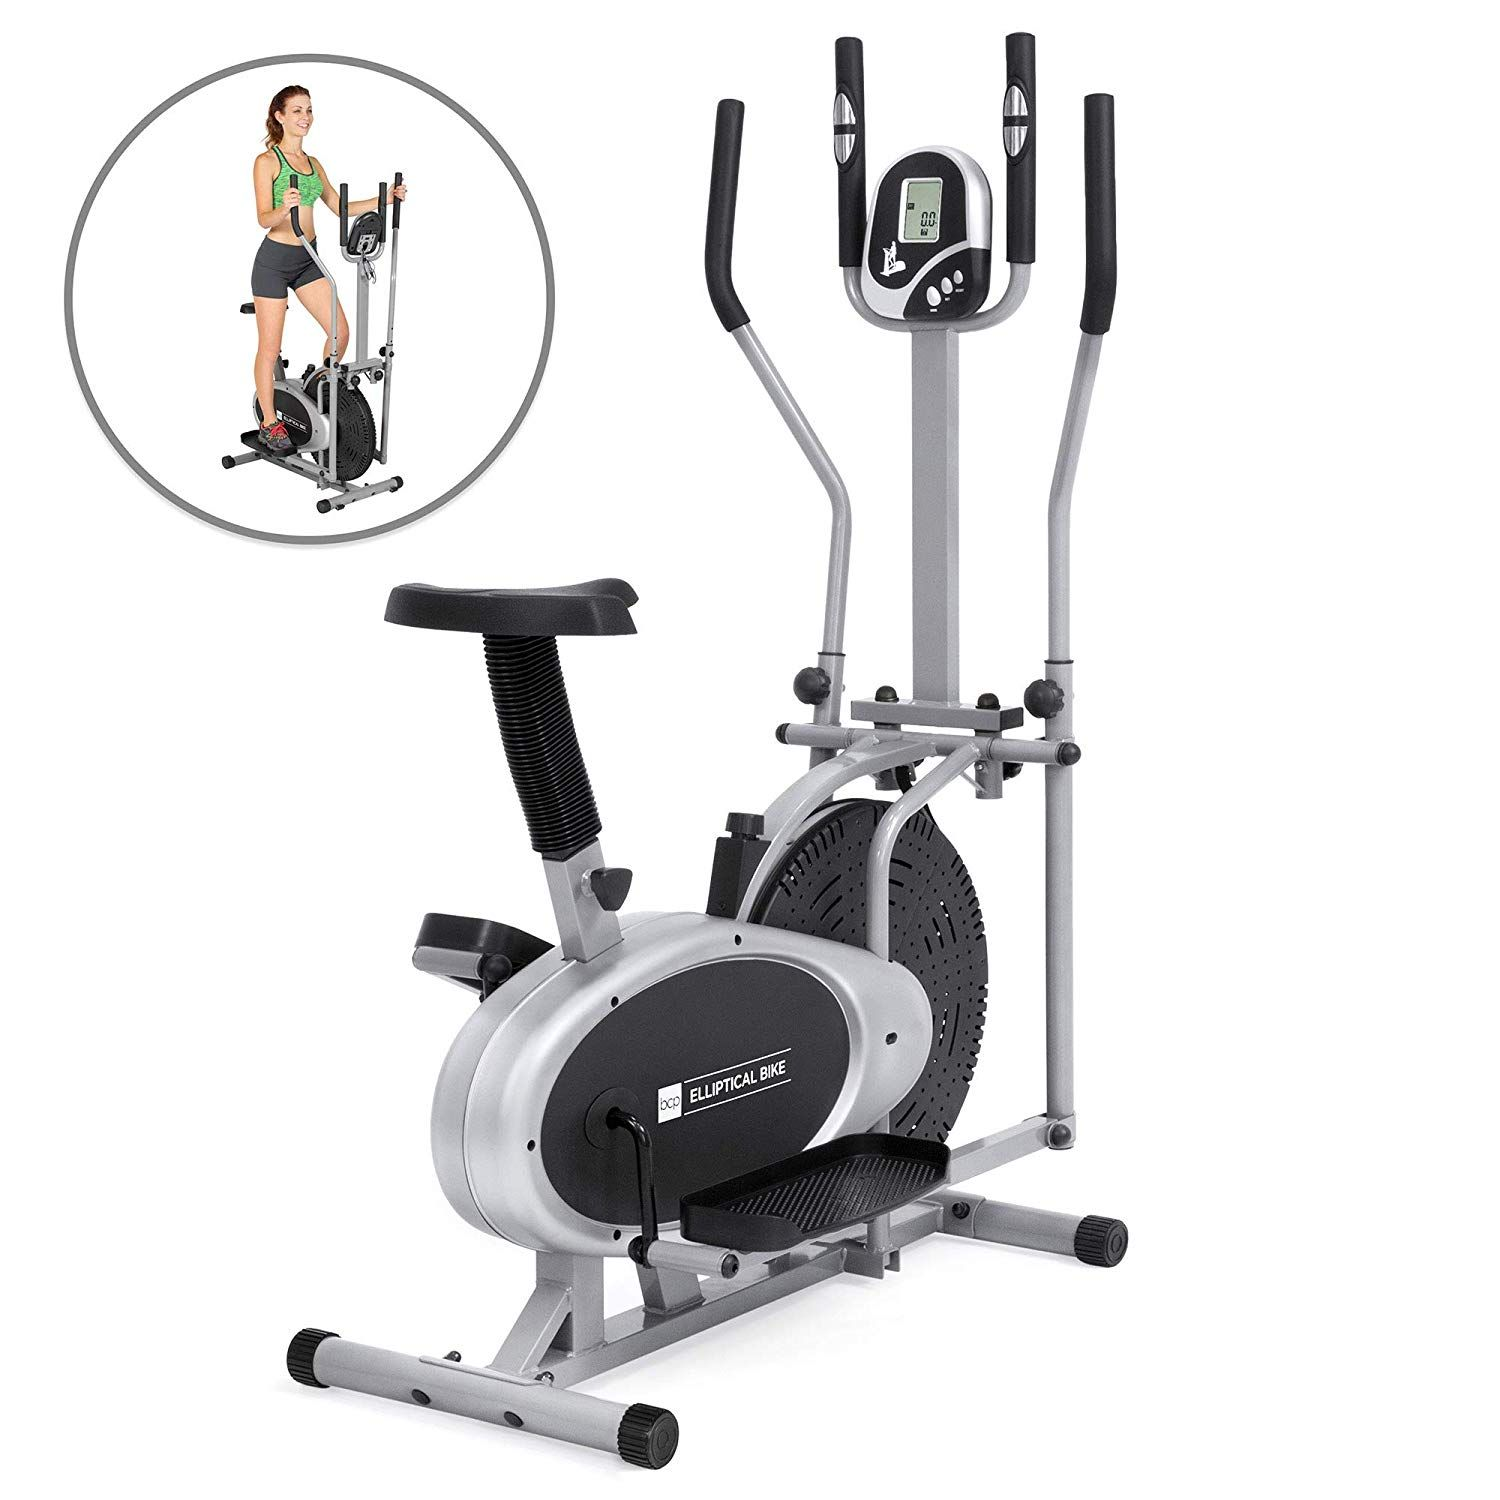 Elliptical Bike 2 In 1 Cross Trainer Exercise Fitness Machine Upgraded Model Want To Know More Click On T Workout Machines Biking Workout Elliptical Trainer